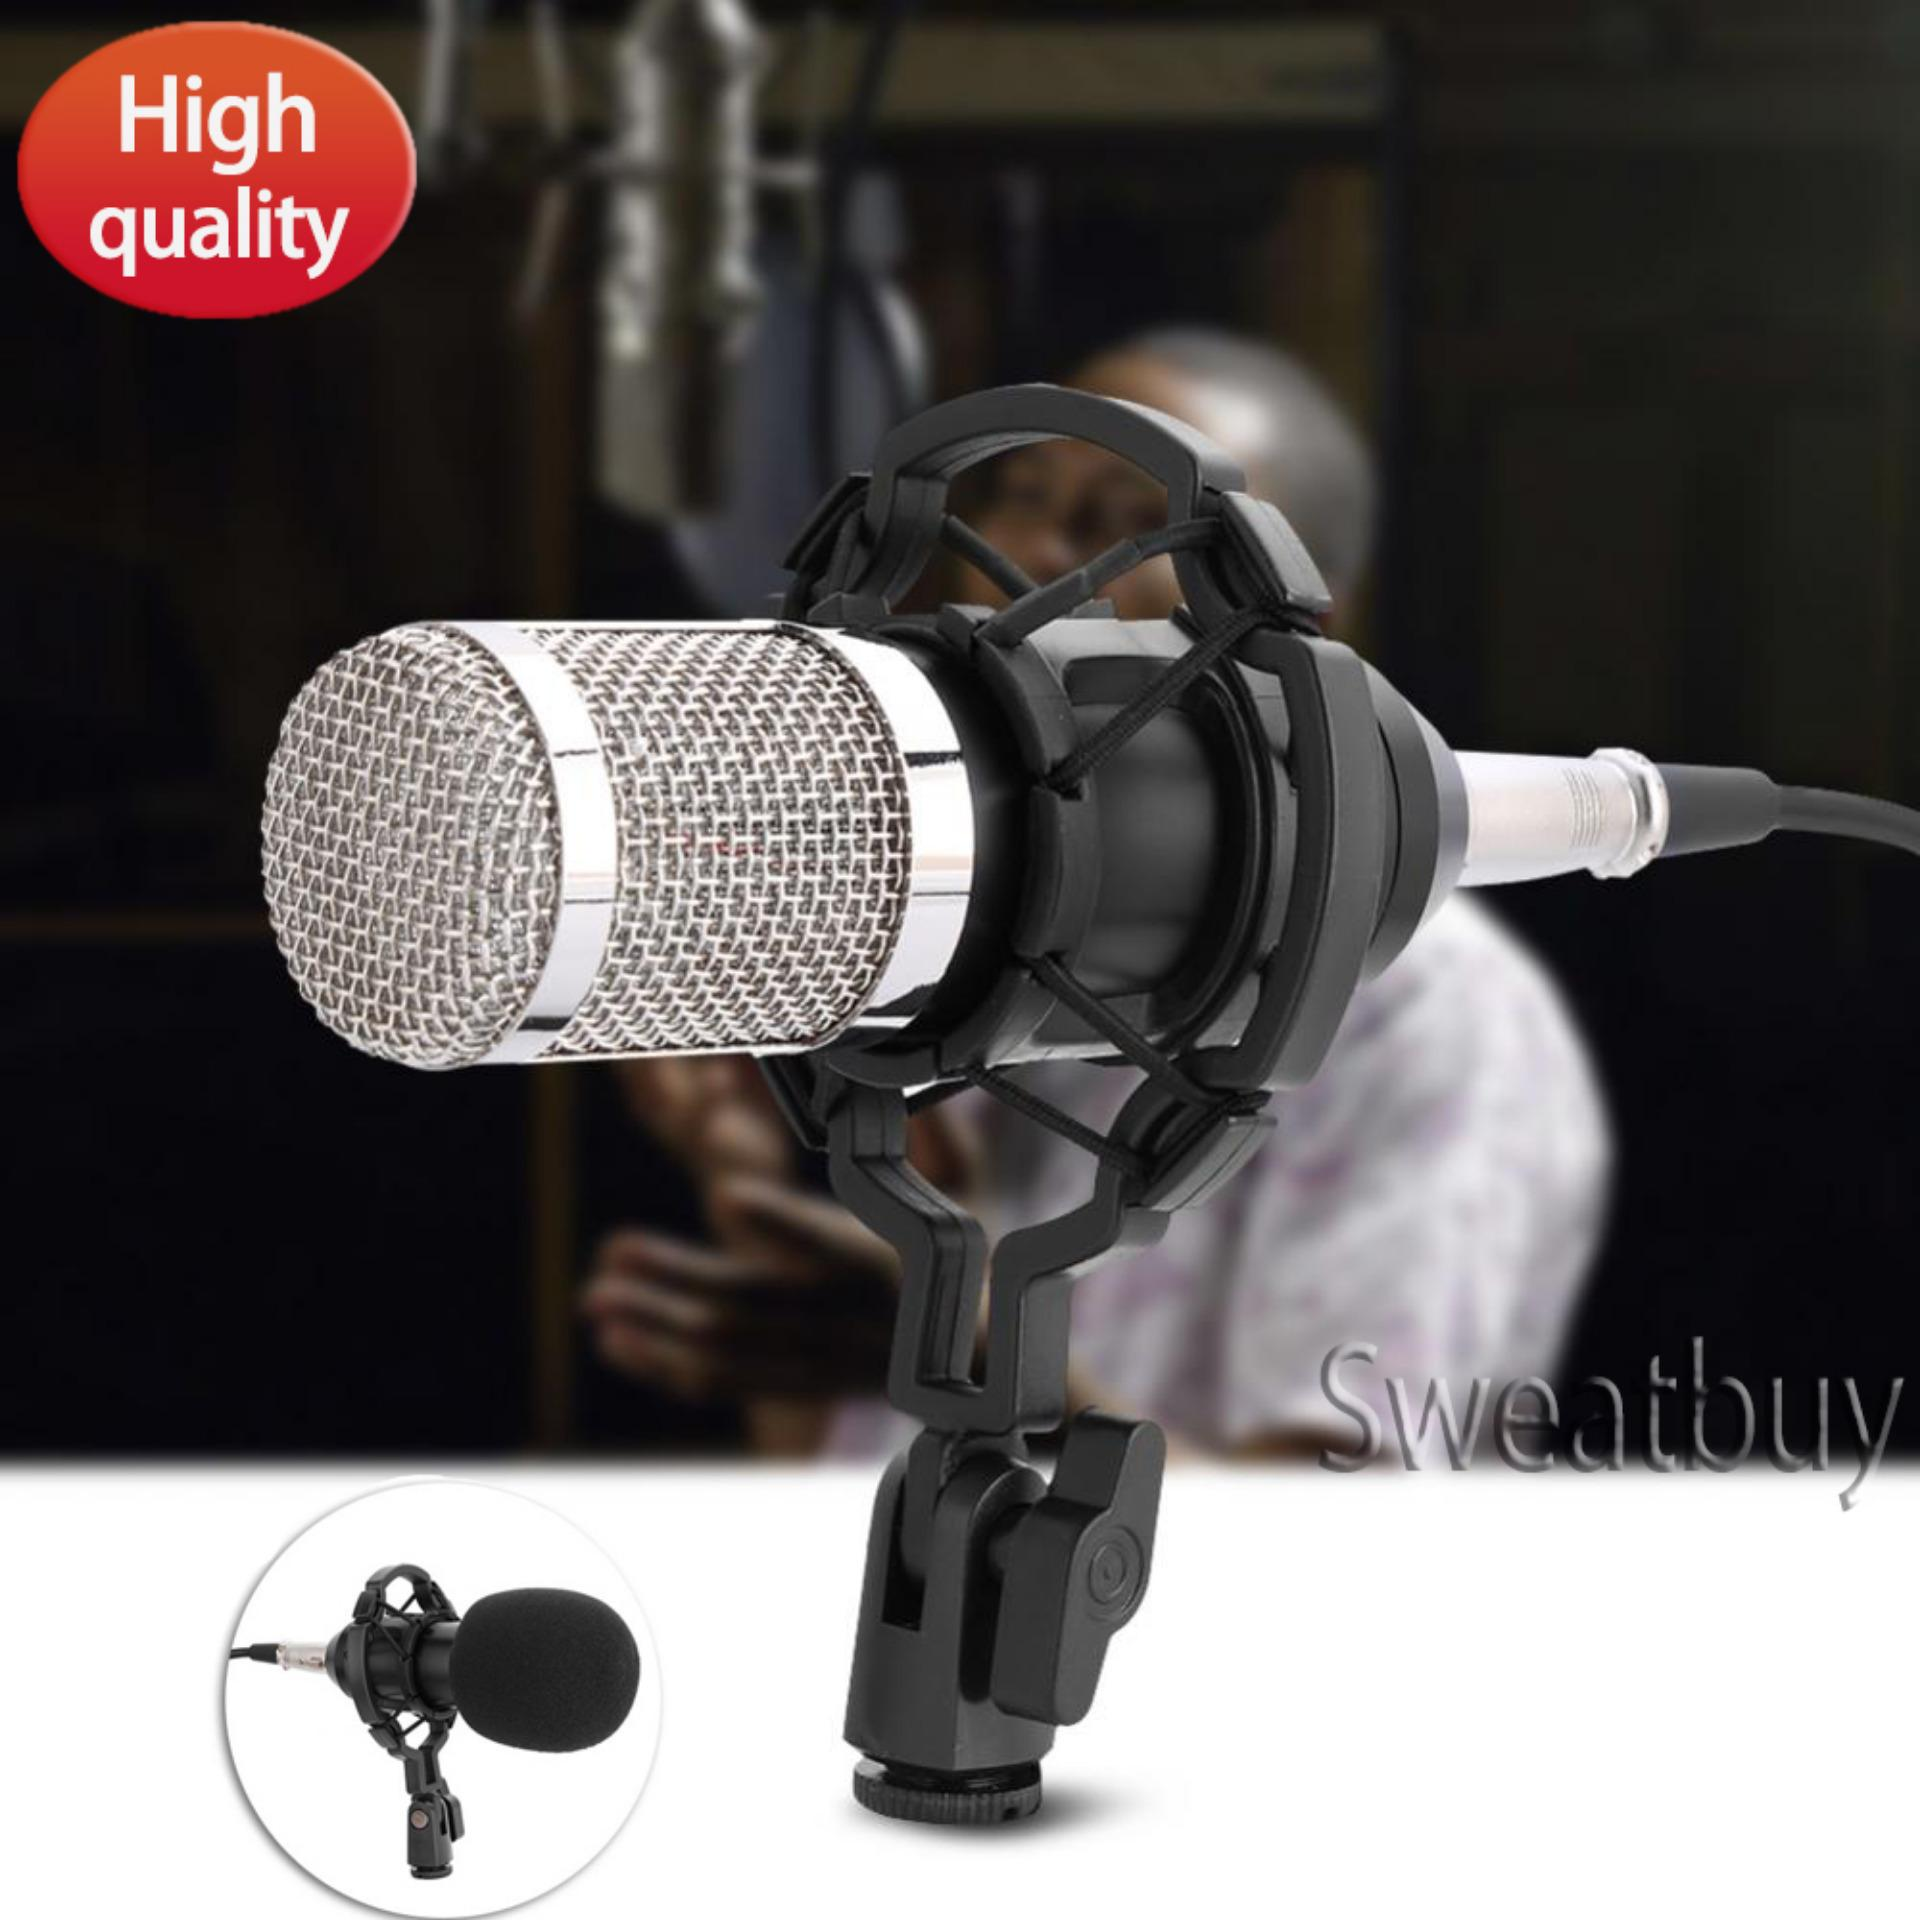 Professional Audio Condenser Microphone Set Studio Sound Recording Mic with Shock Mount - intl(Black)